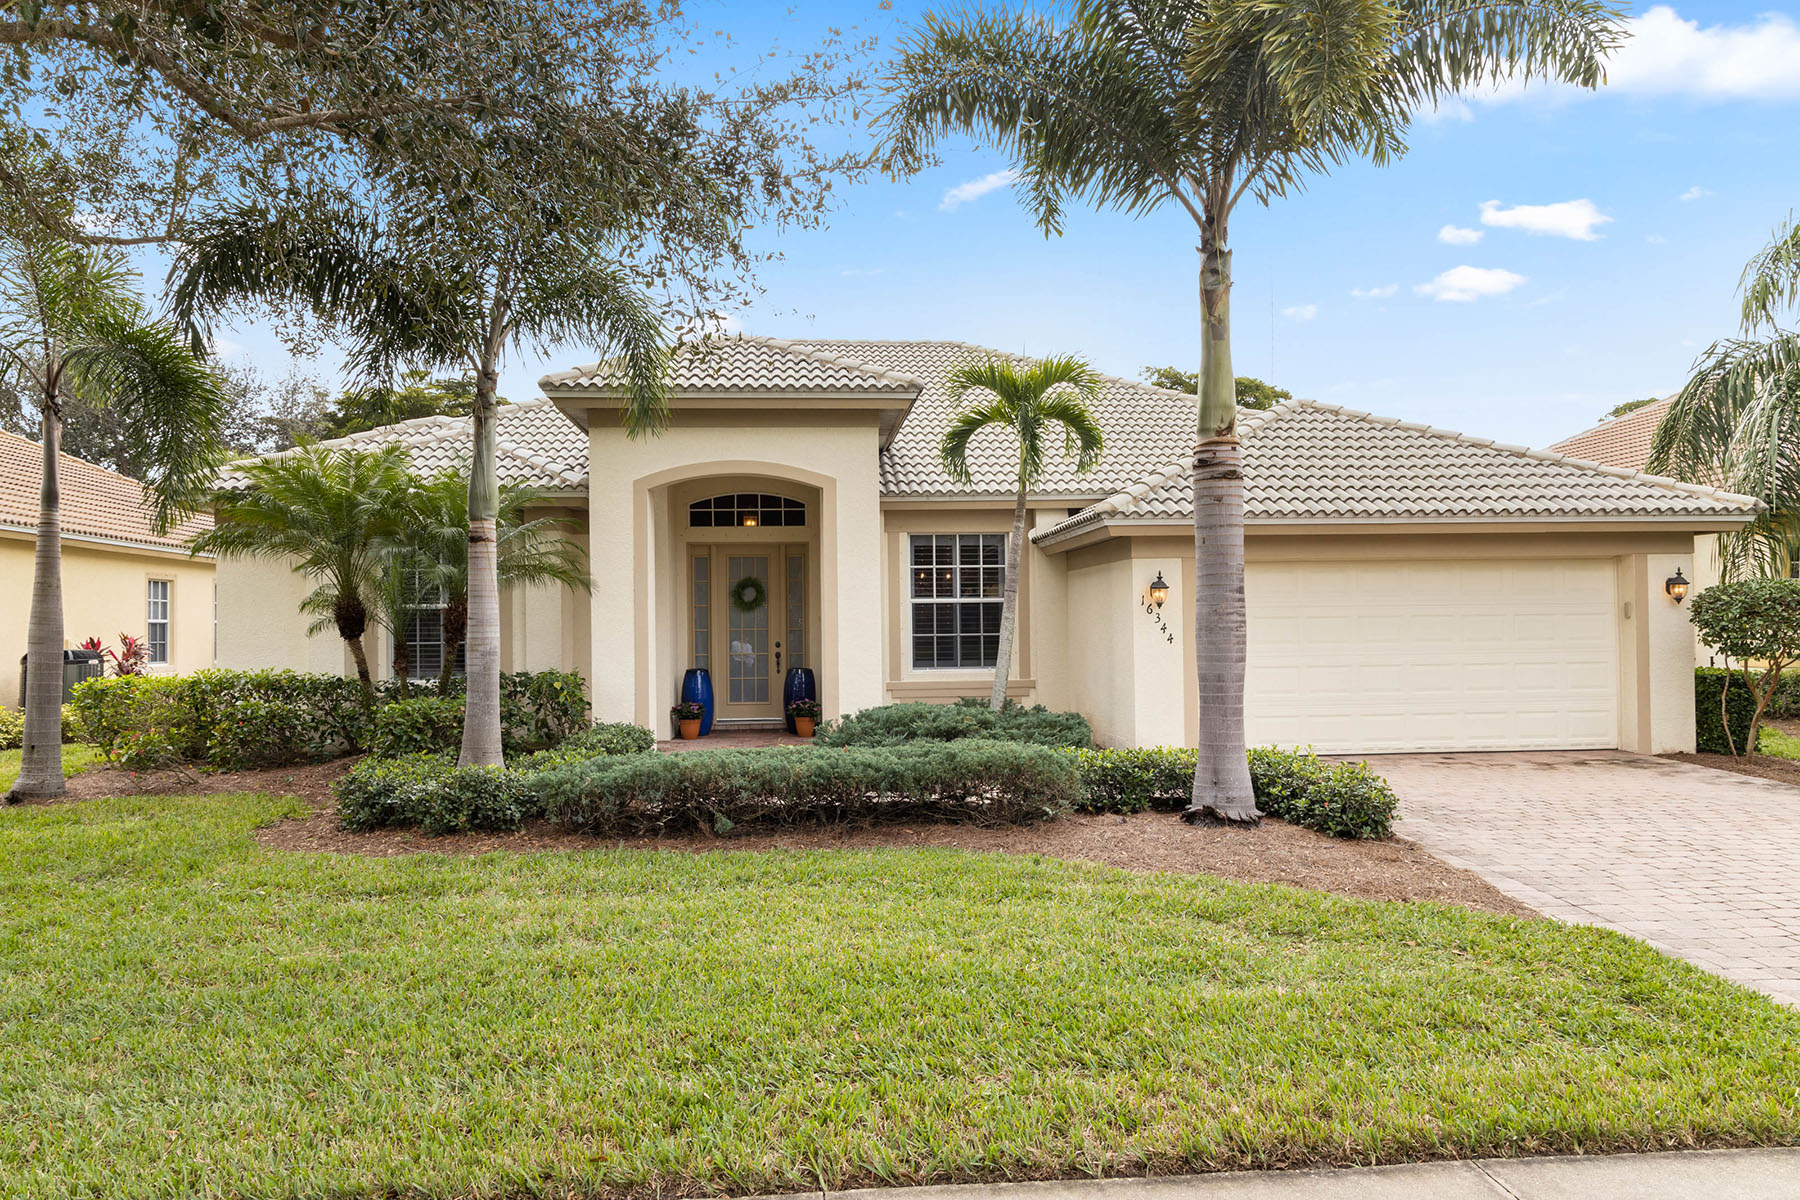 Single Family Homes for Sale at COCO BAY 16344 Coco Hammock Way Fort Myers, Florida 33908 United States